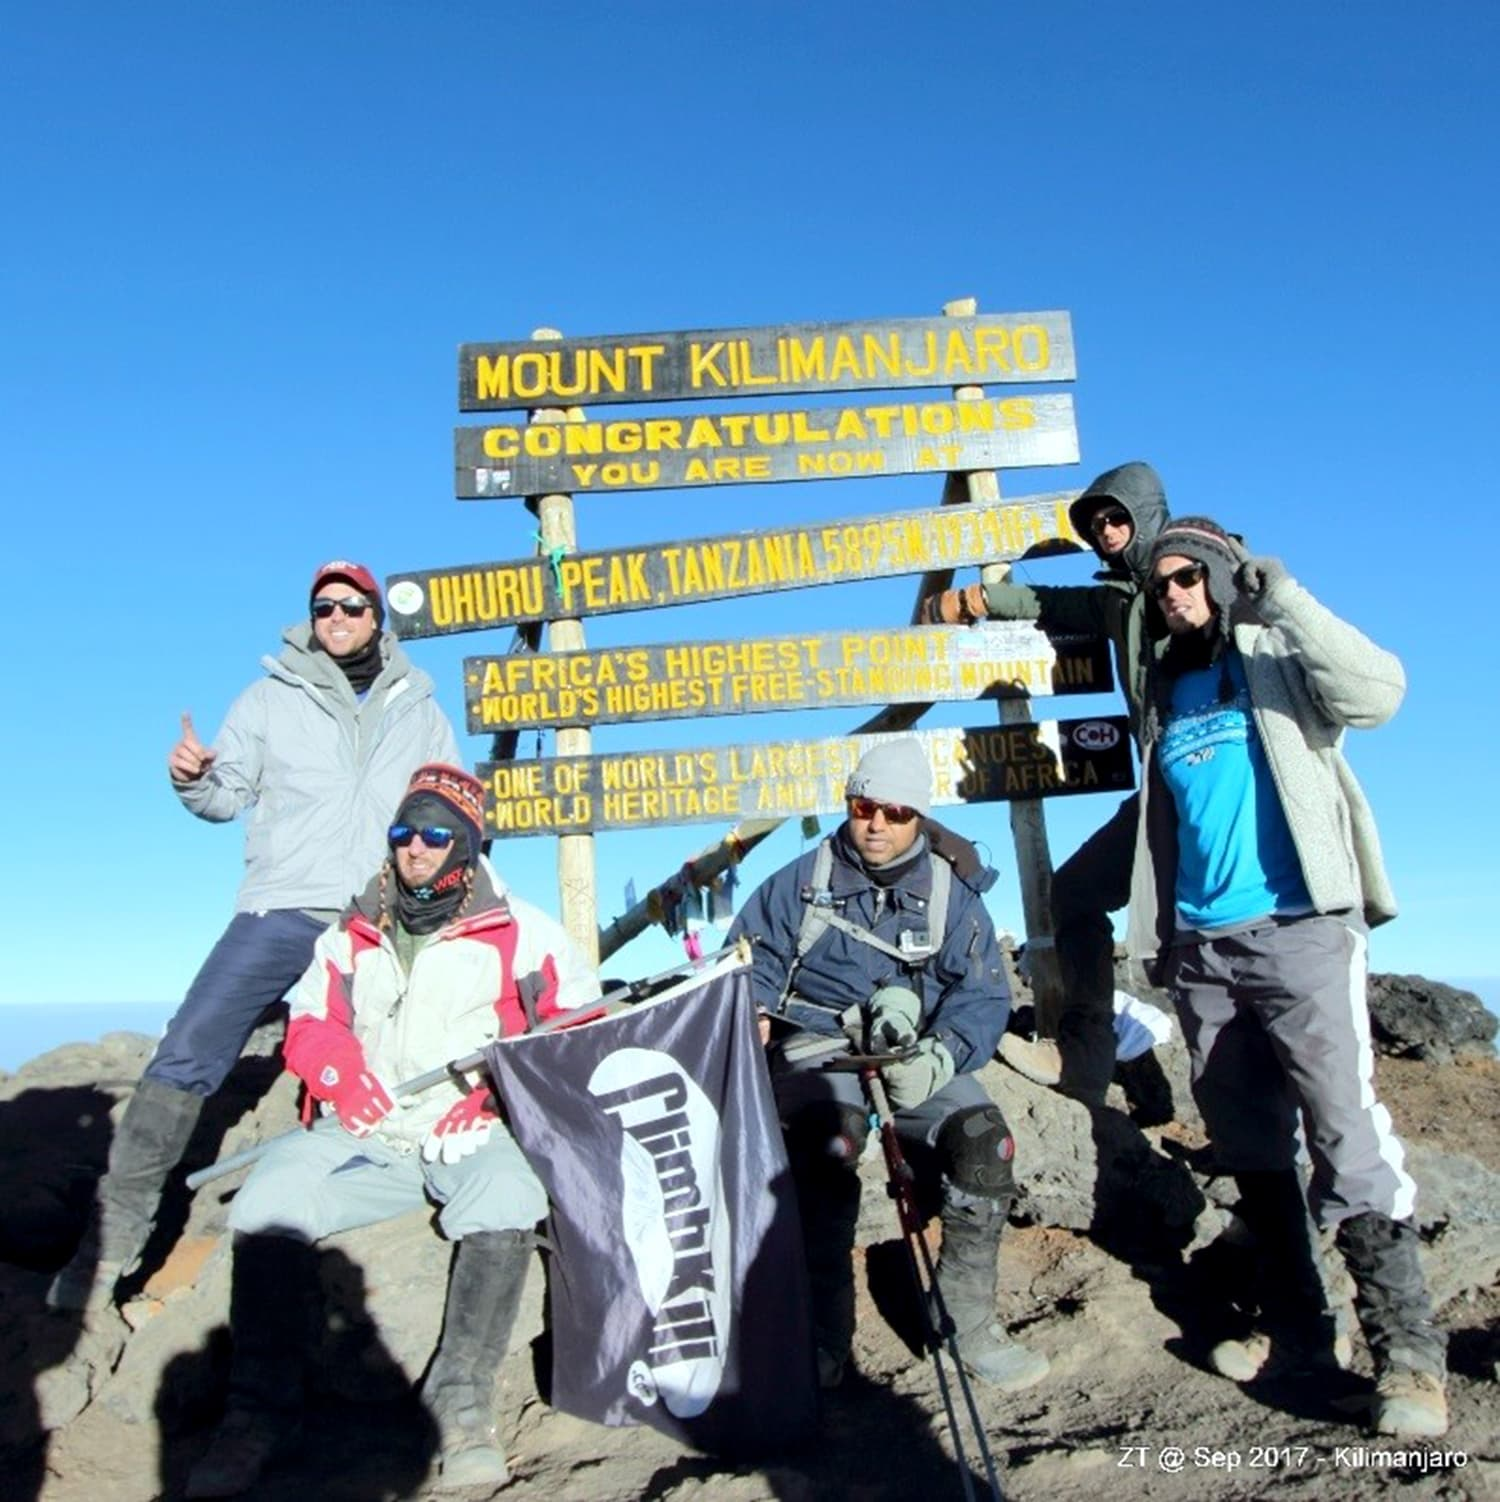 On top of Africa - been there, done that!